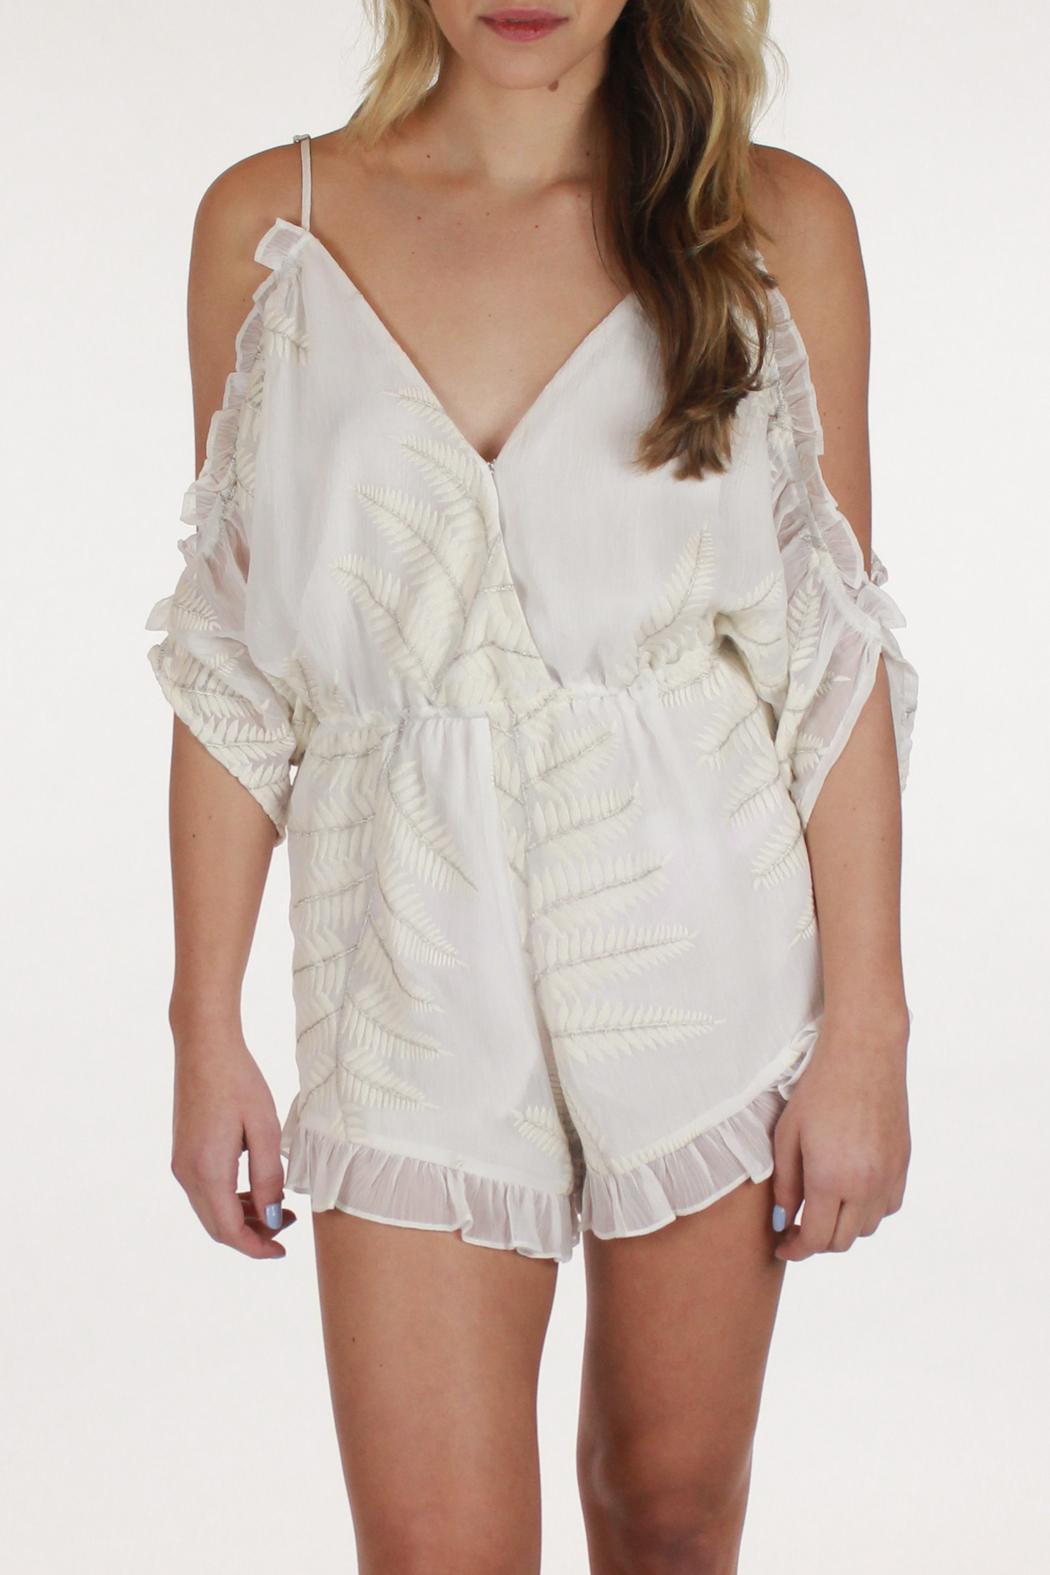 329d957ceaad Lovers + Friends Malia Ruffled Romper from California by pinkadot ...